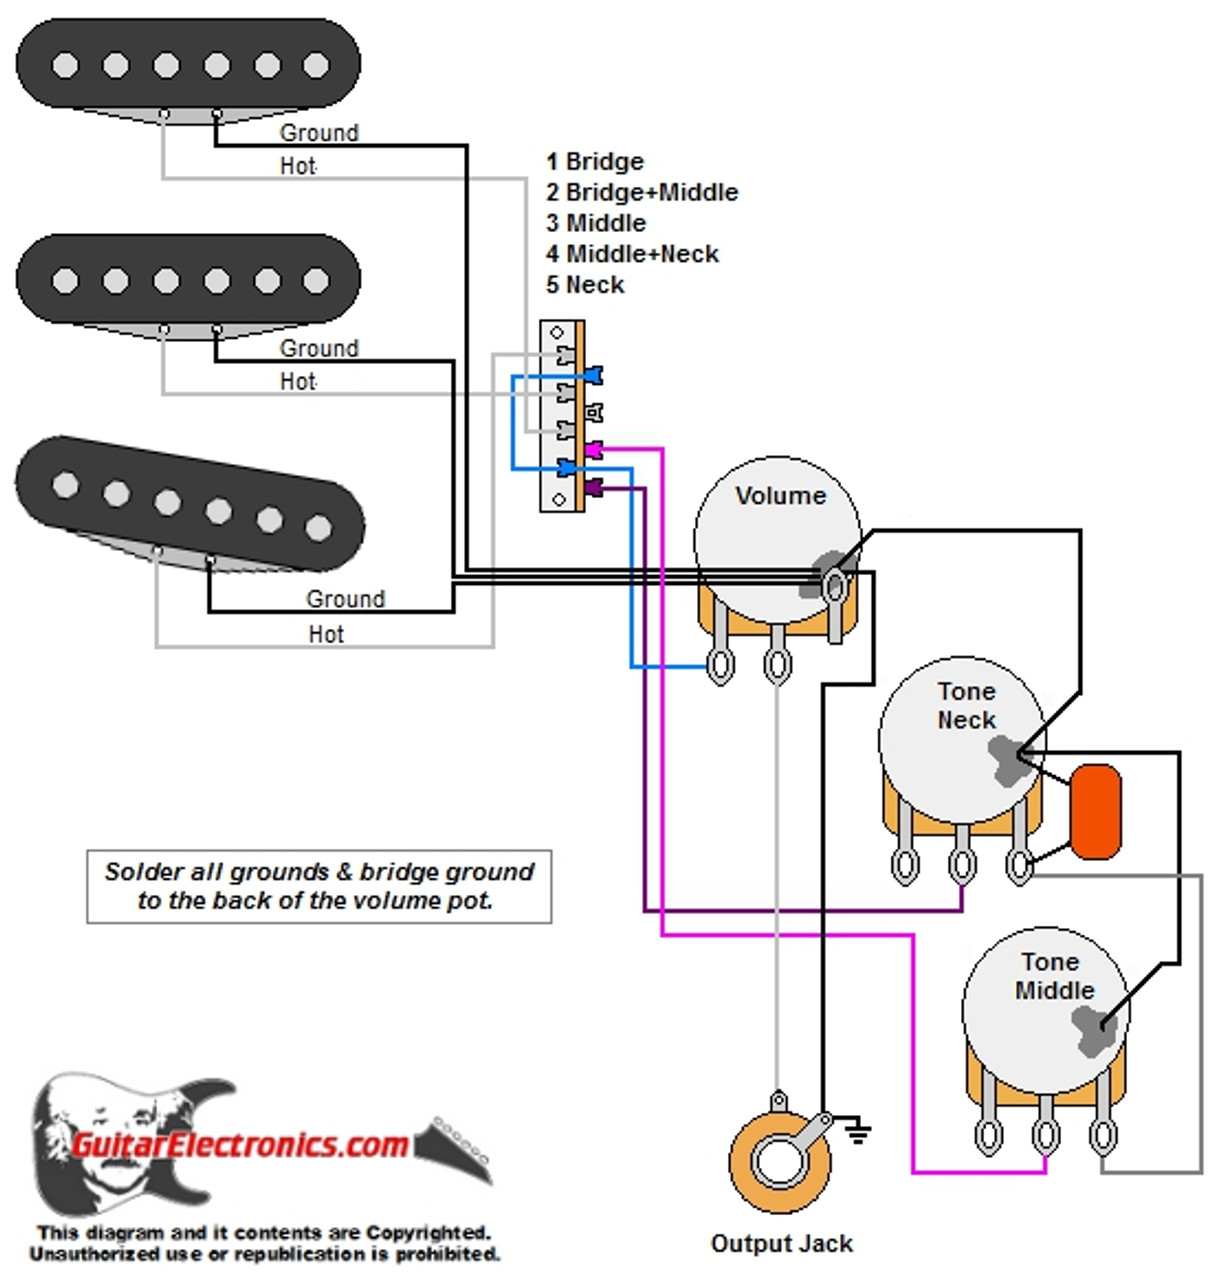 hight resolution of strat style guitar wiring diagram stratocaster wiring 3 way wdusss5l1201 80483 1481740458 jpg c